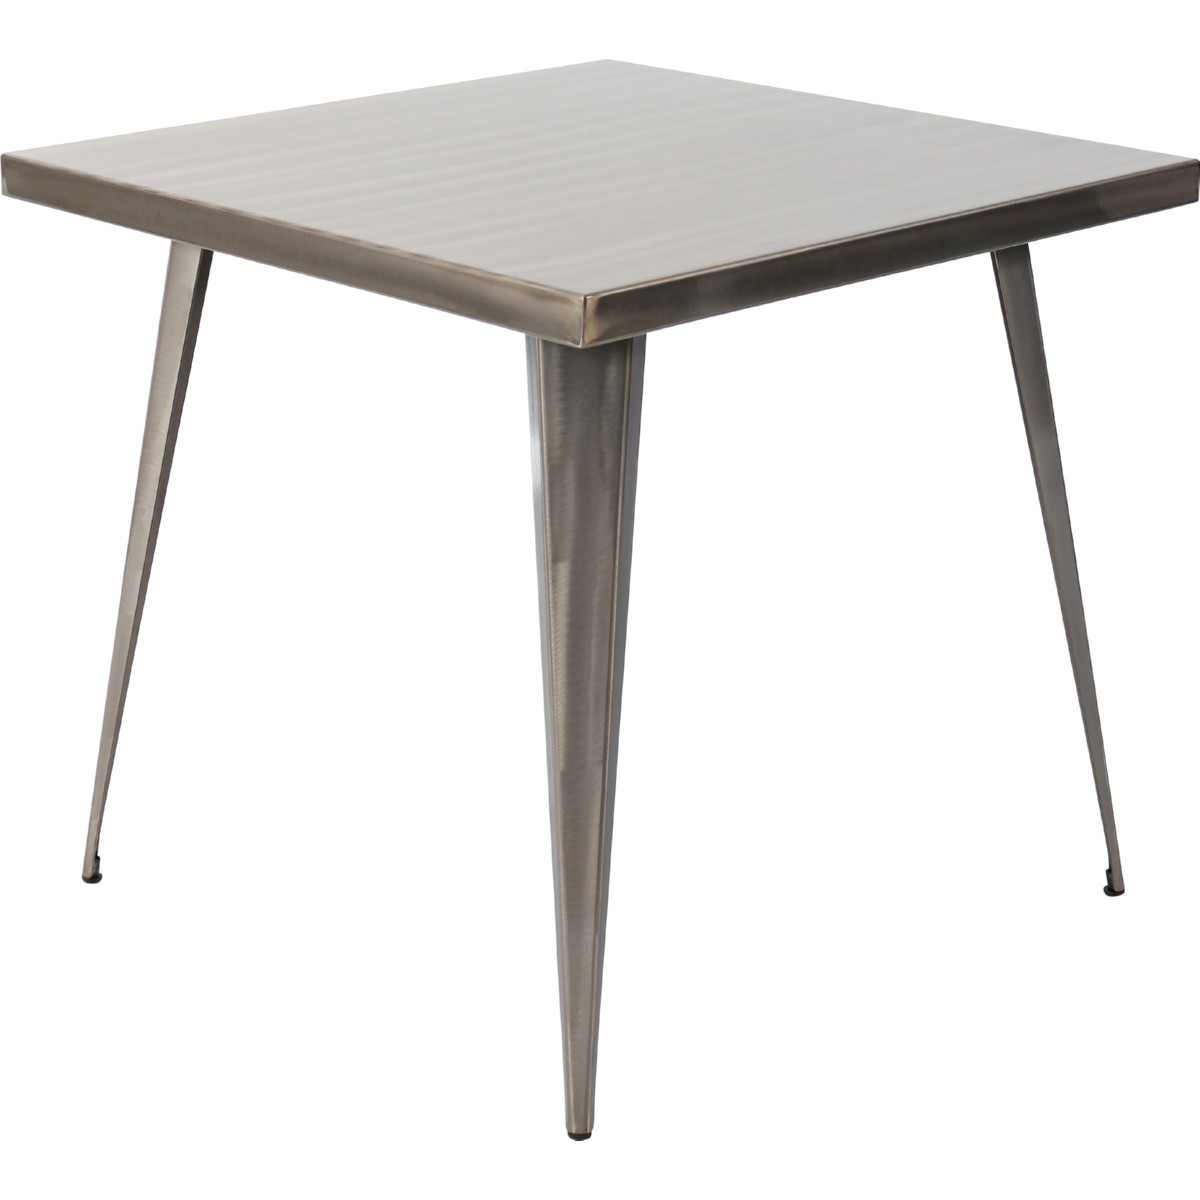 100 Silver Dining Table Steve Silver Hartford 72  : DT TW AU3232 SV 2 from 45.77.108.62 size 1200 x 1200 jpeg 73kB